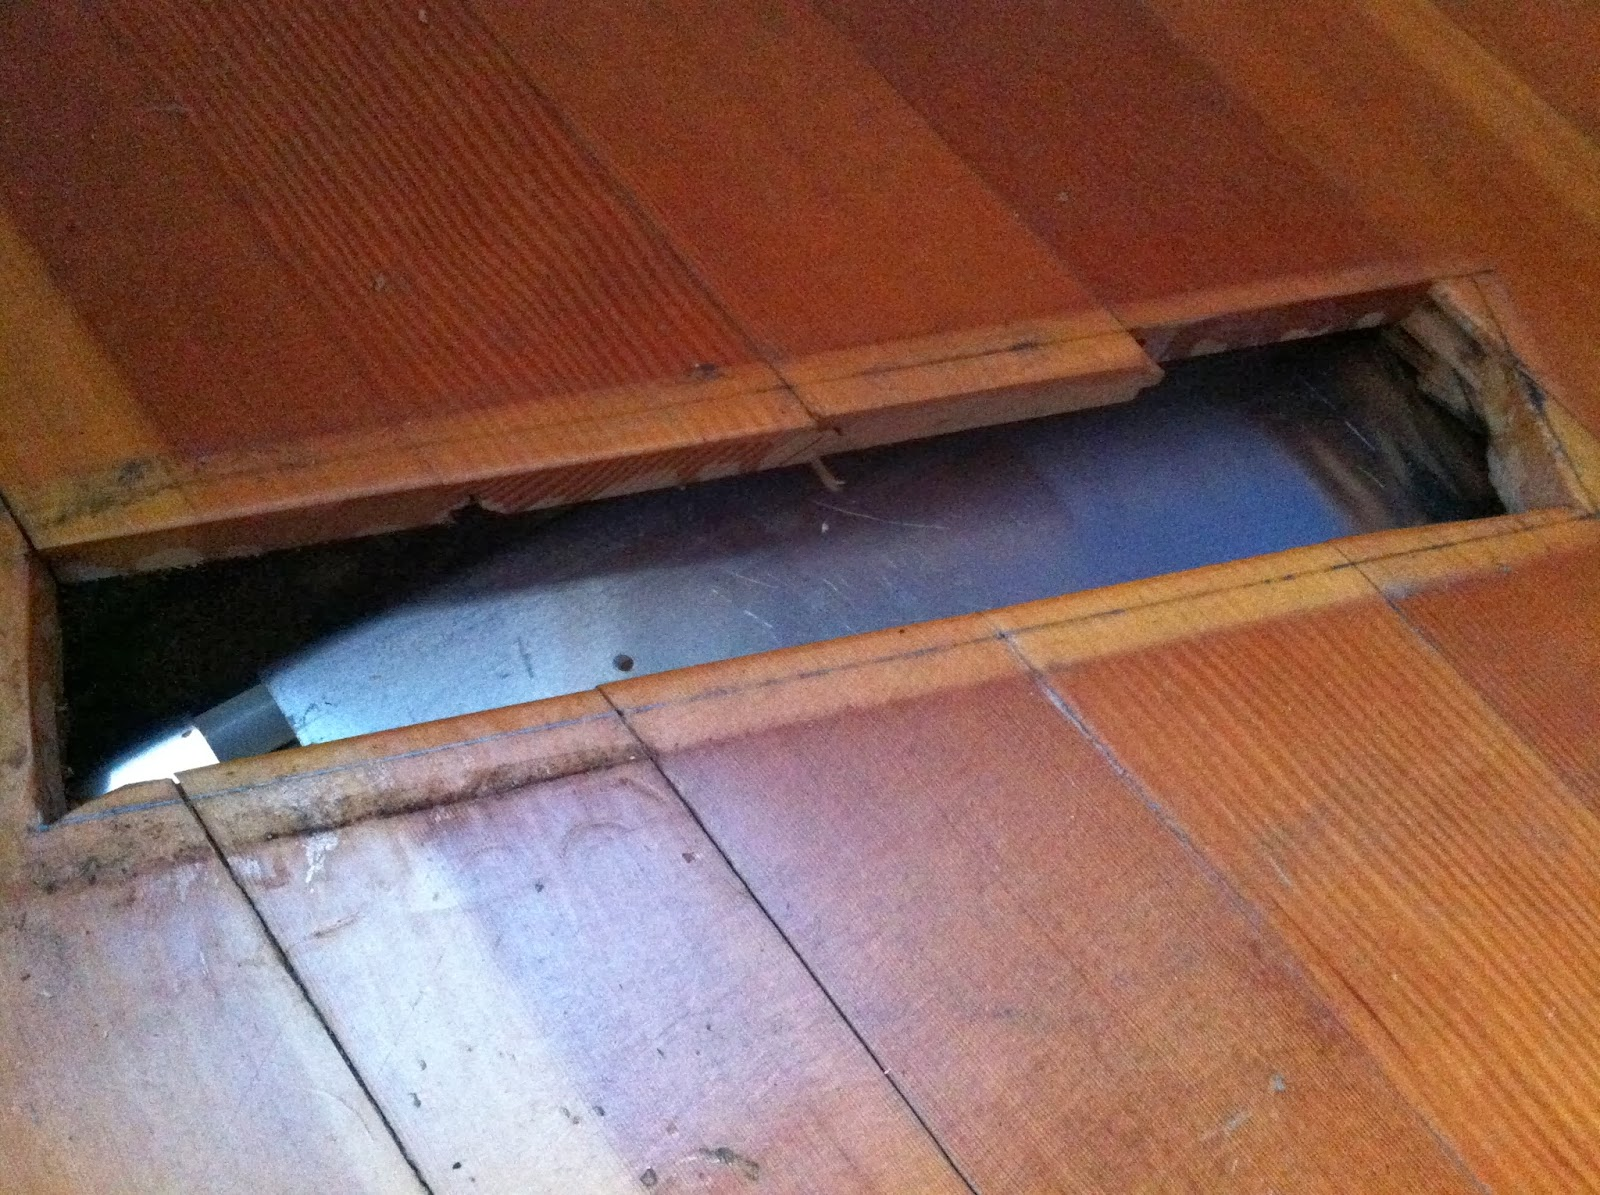 As A Result Of The Heating System Upgrade Ducts From Old Were Removed Leaving Holes In Wood Floor Previous Supply And Return